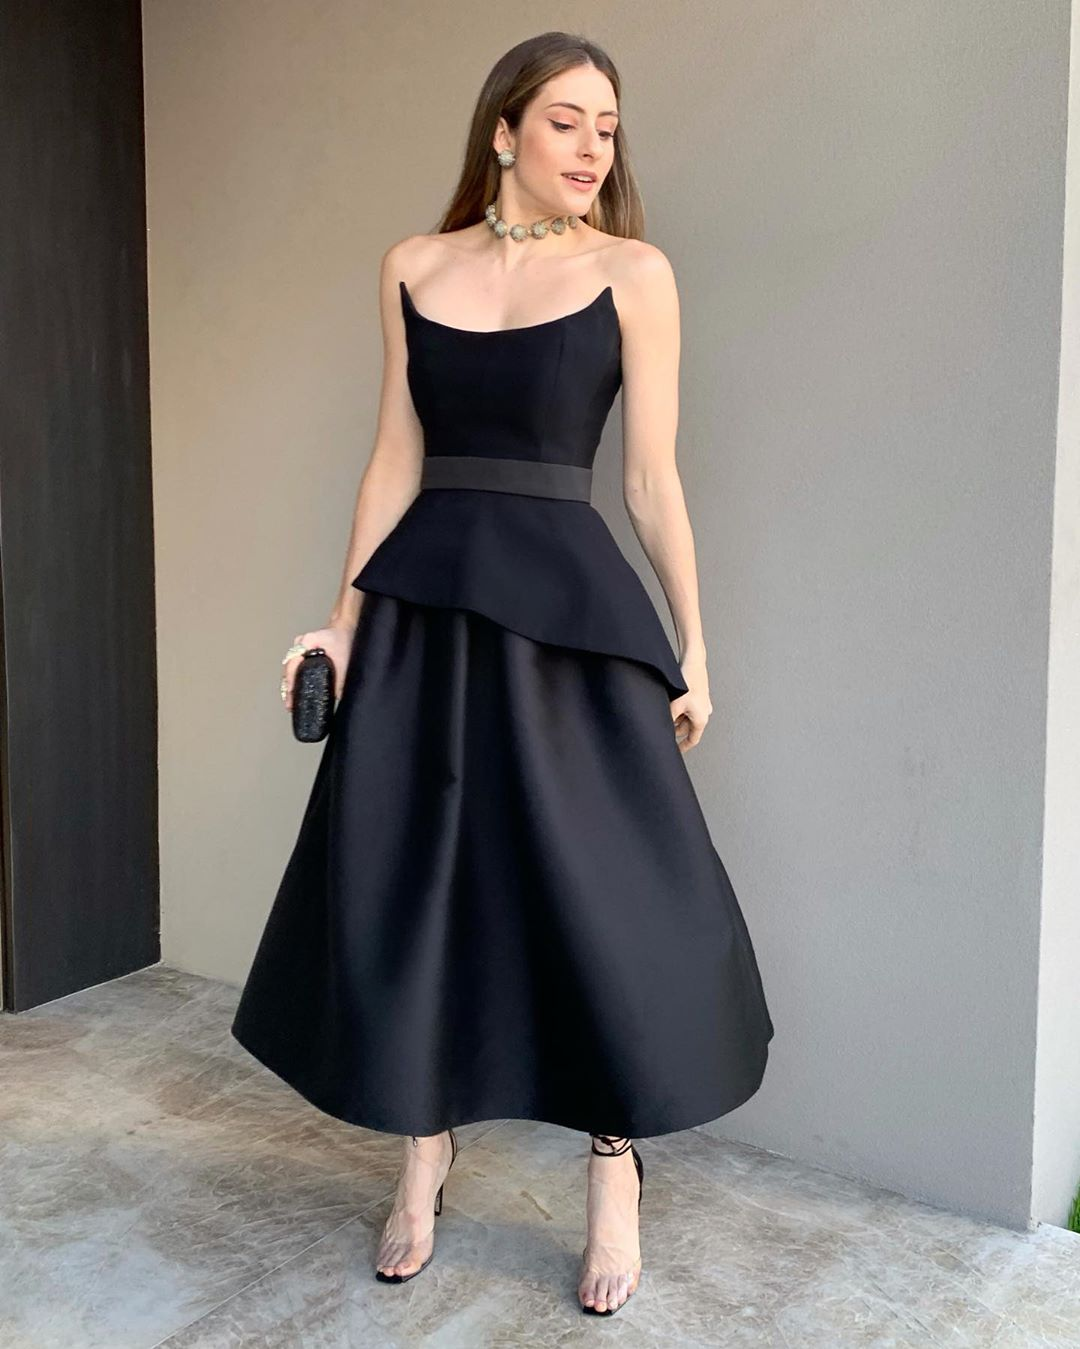 2020 Black Tea Length Cocktail Dress A Line Satin Tiered Plus Size Sexy Women Prom Dresses Long Boat Neck Formal Party Gowns